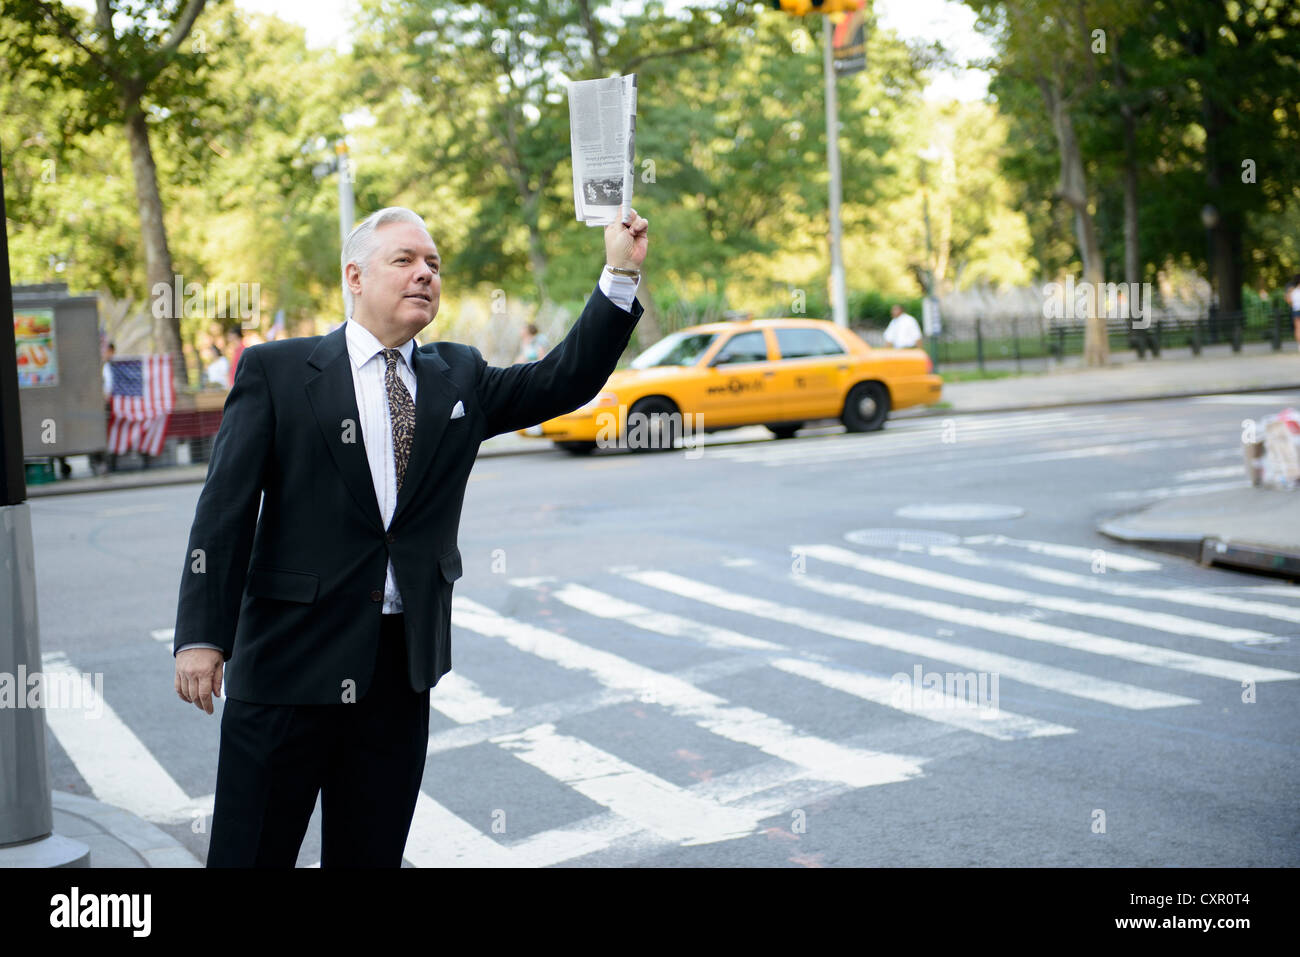 Businessman hailing a cab in New York City - Stock Image